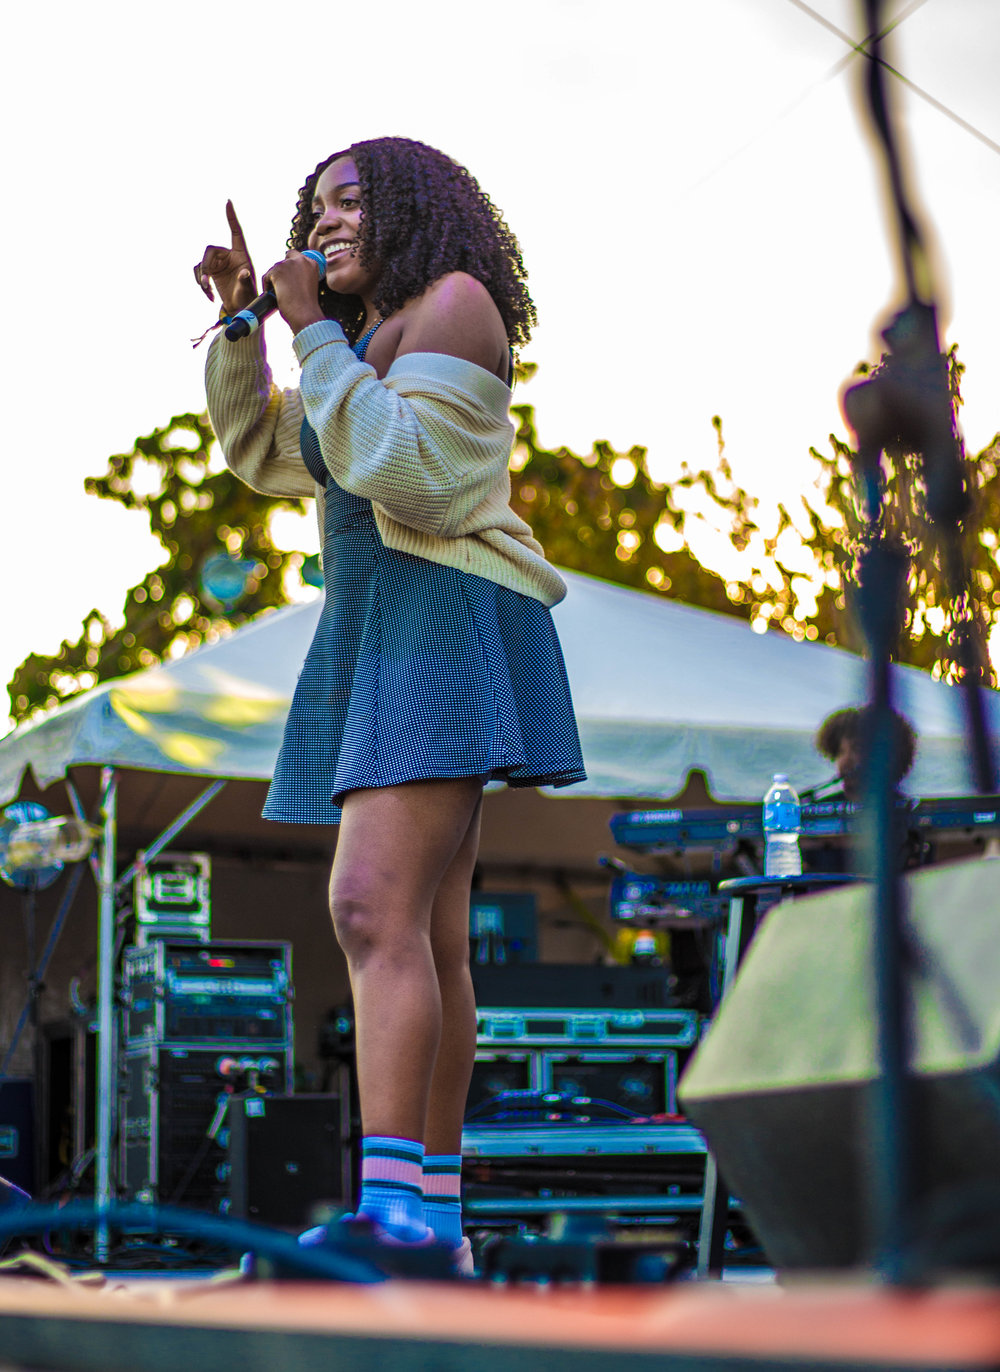 Noname performing during her sunset slot at ATMF